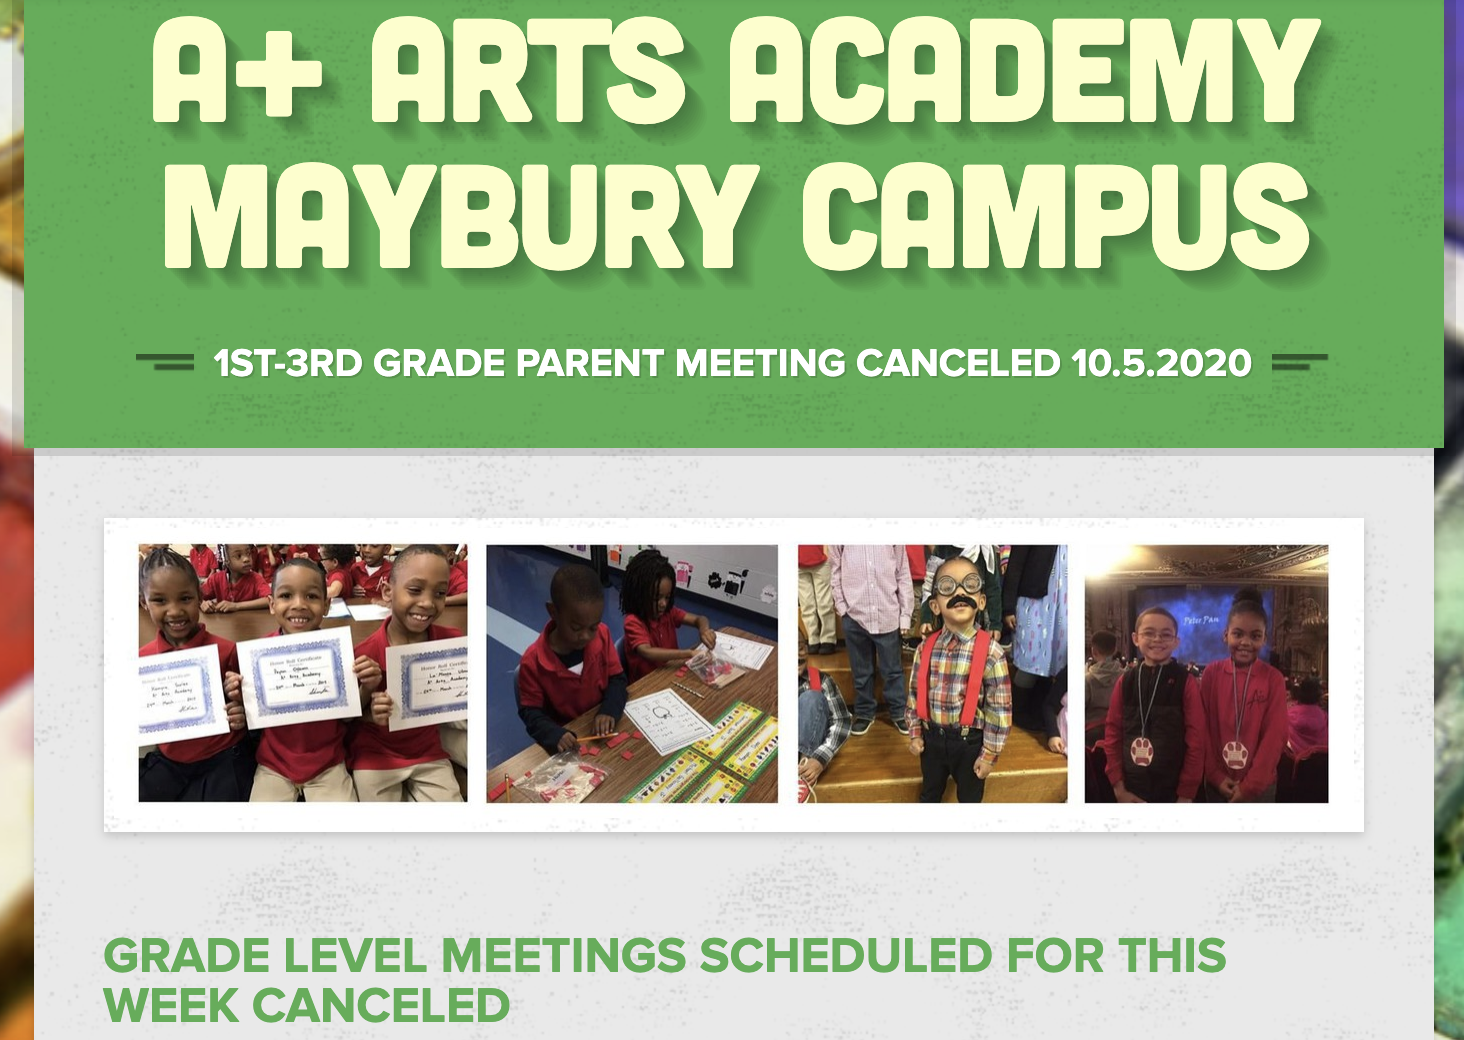 A+ Arts Academy Maybury Campus